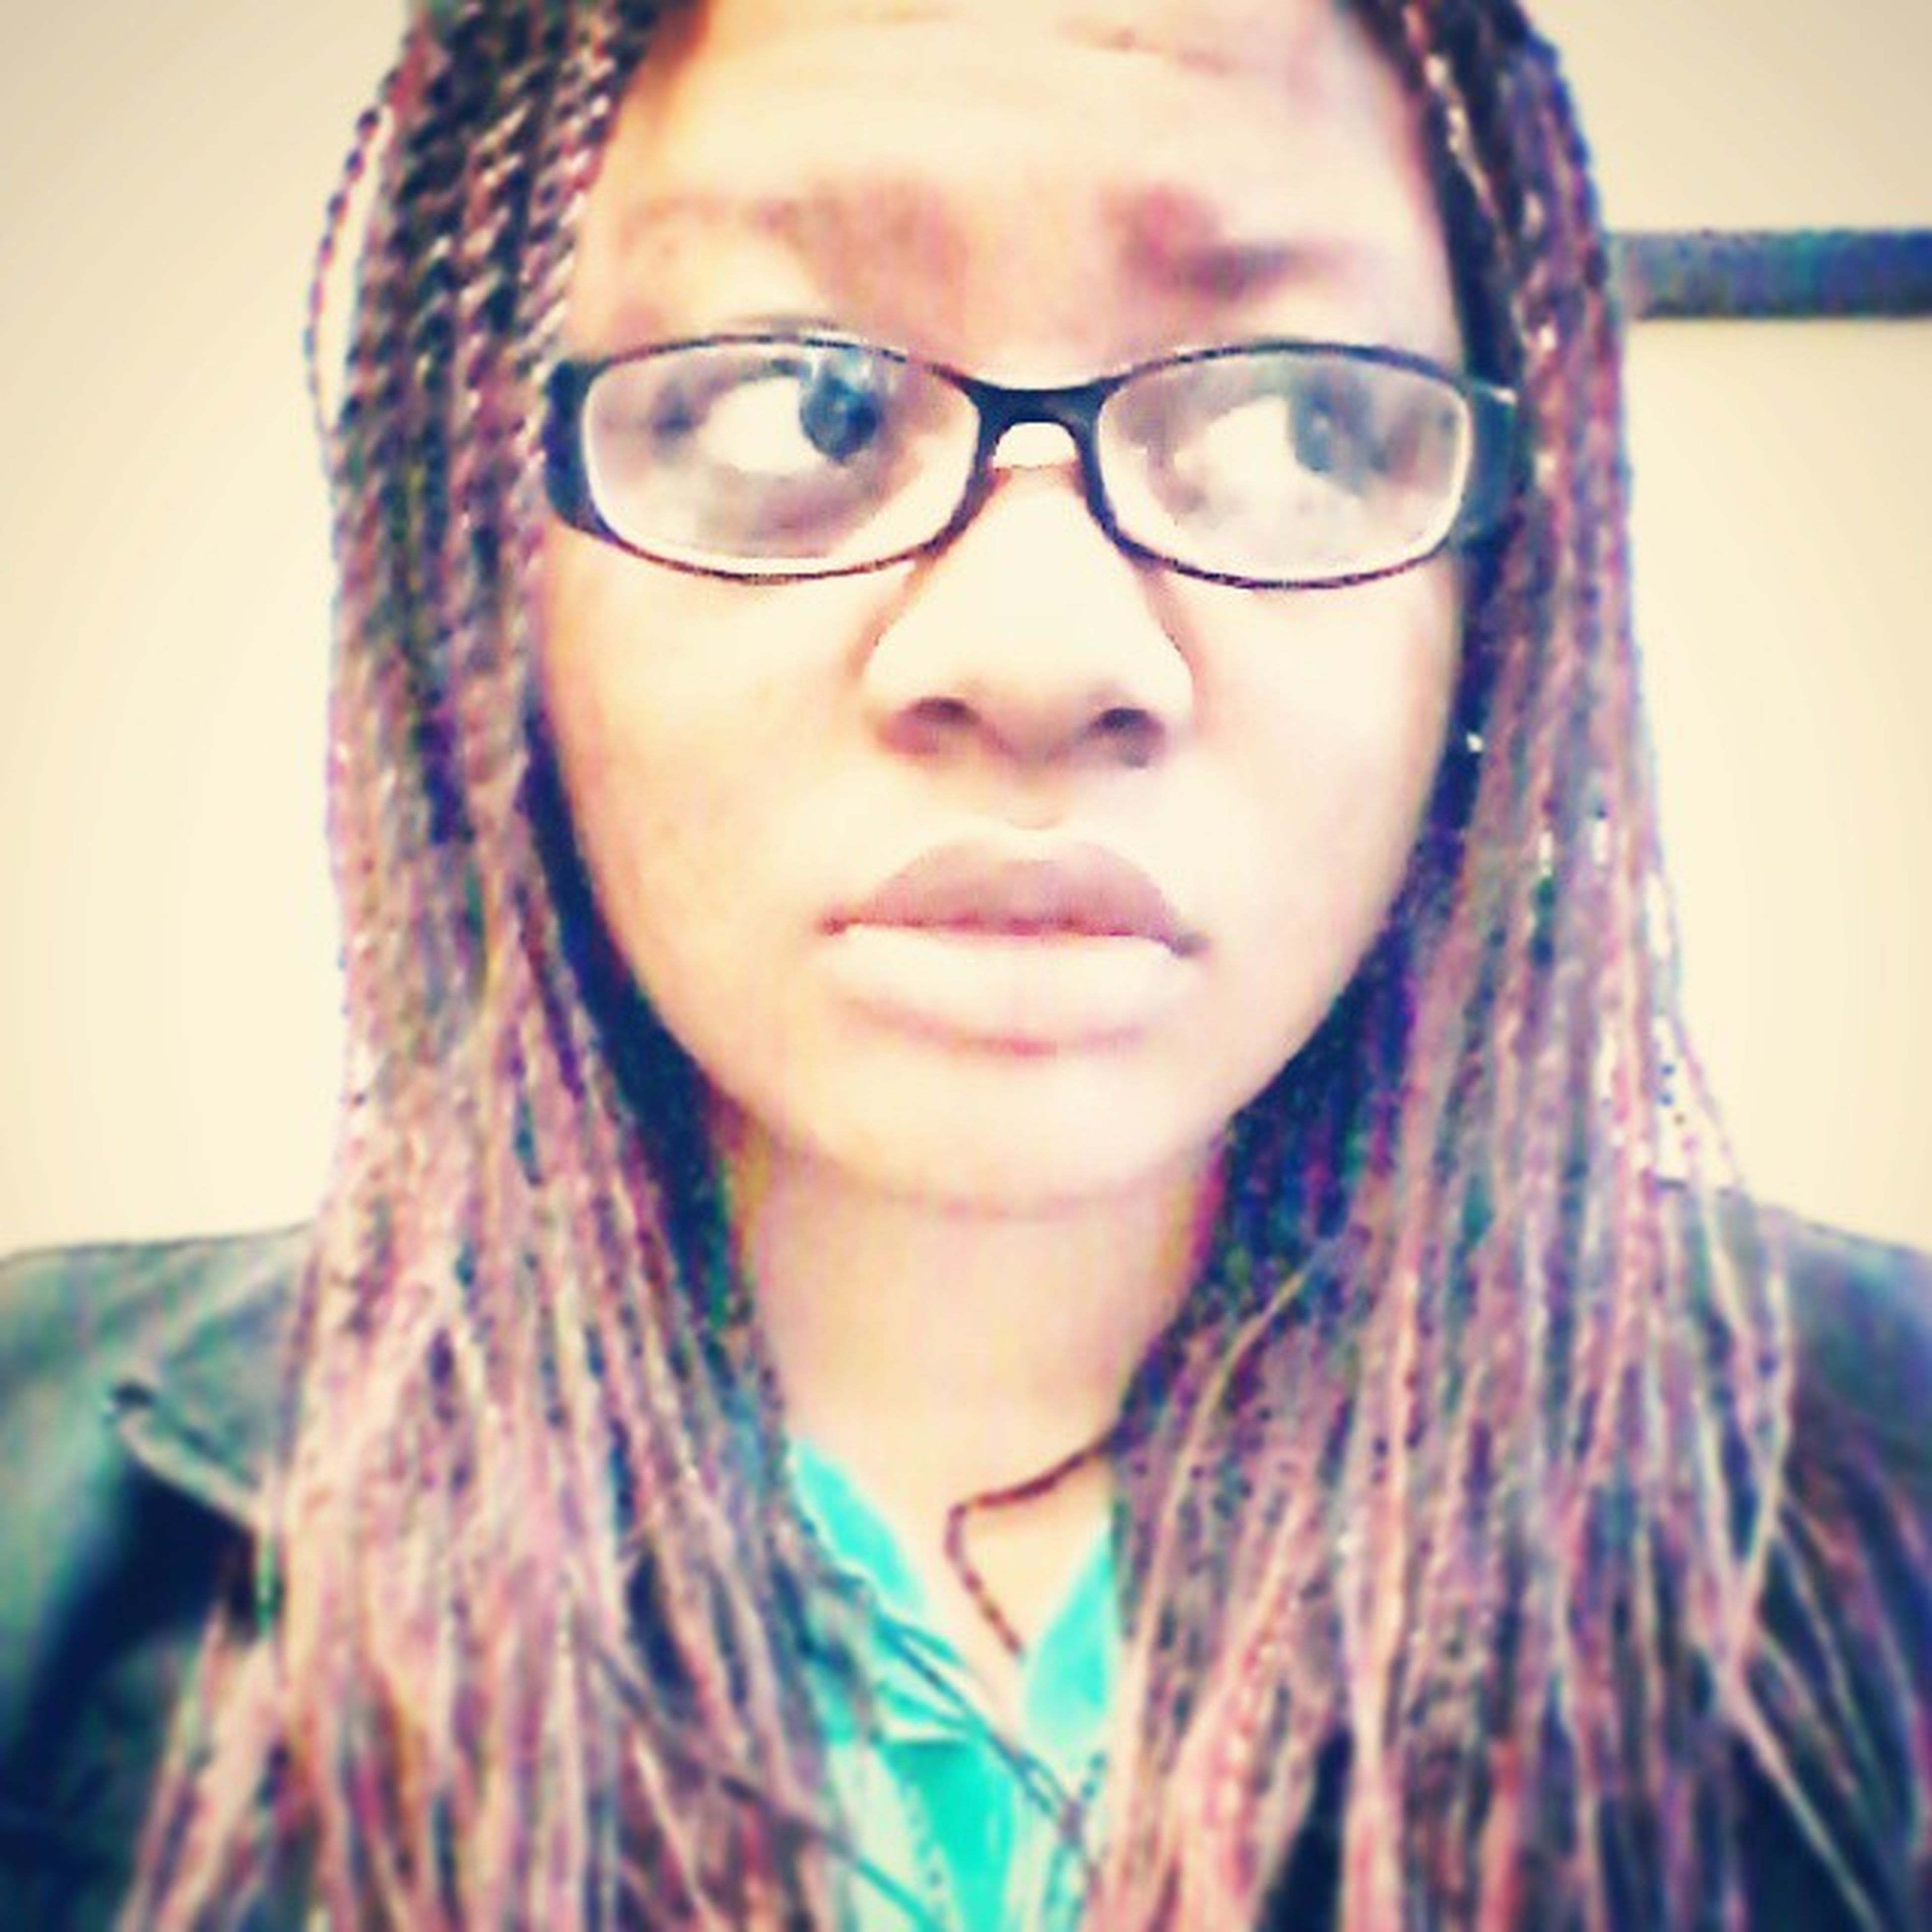 First day of clusters got me like....Pharmlife Clusters Beyondnervous Praying 😟😢😥😧😨😯🙏🙇🙏🙏